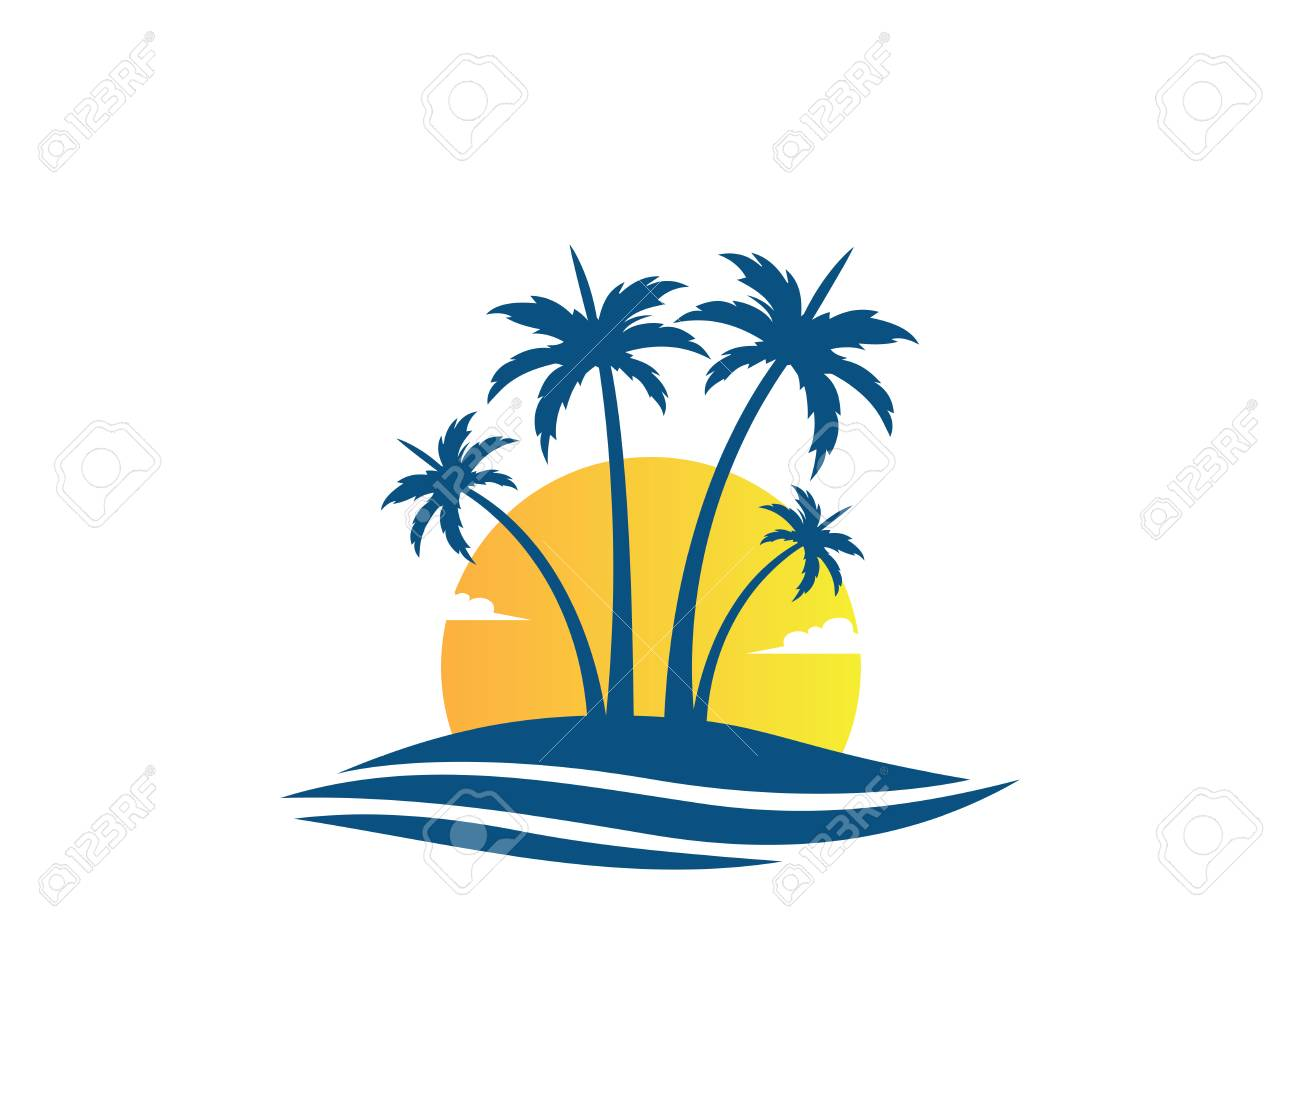 sun beach ocean wave palm coconut tree vector logo design royalty rh 123rf com palm tree free vector silhouette palm tree vectors free download